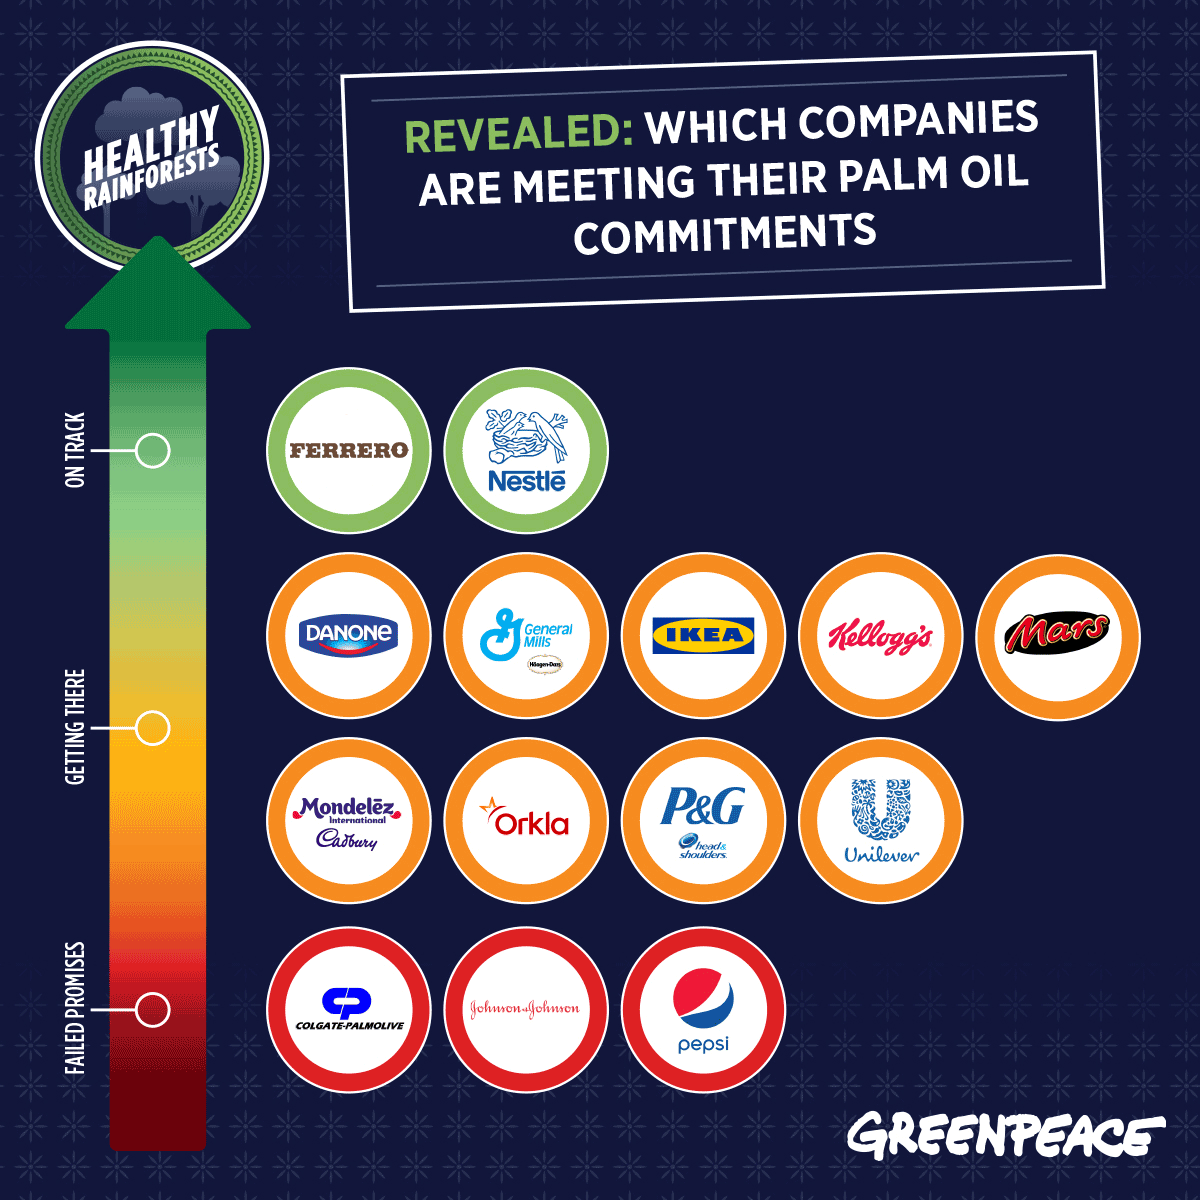 Graph ranking how well global companies are meeting their palm oil commitments.